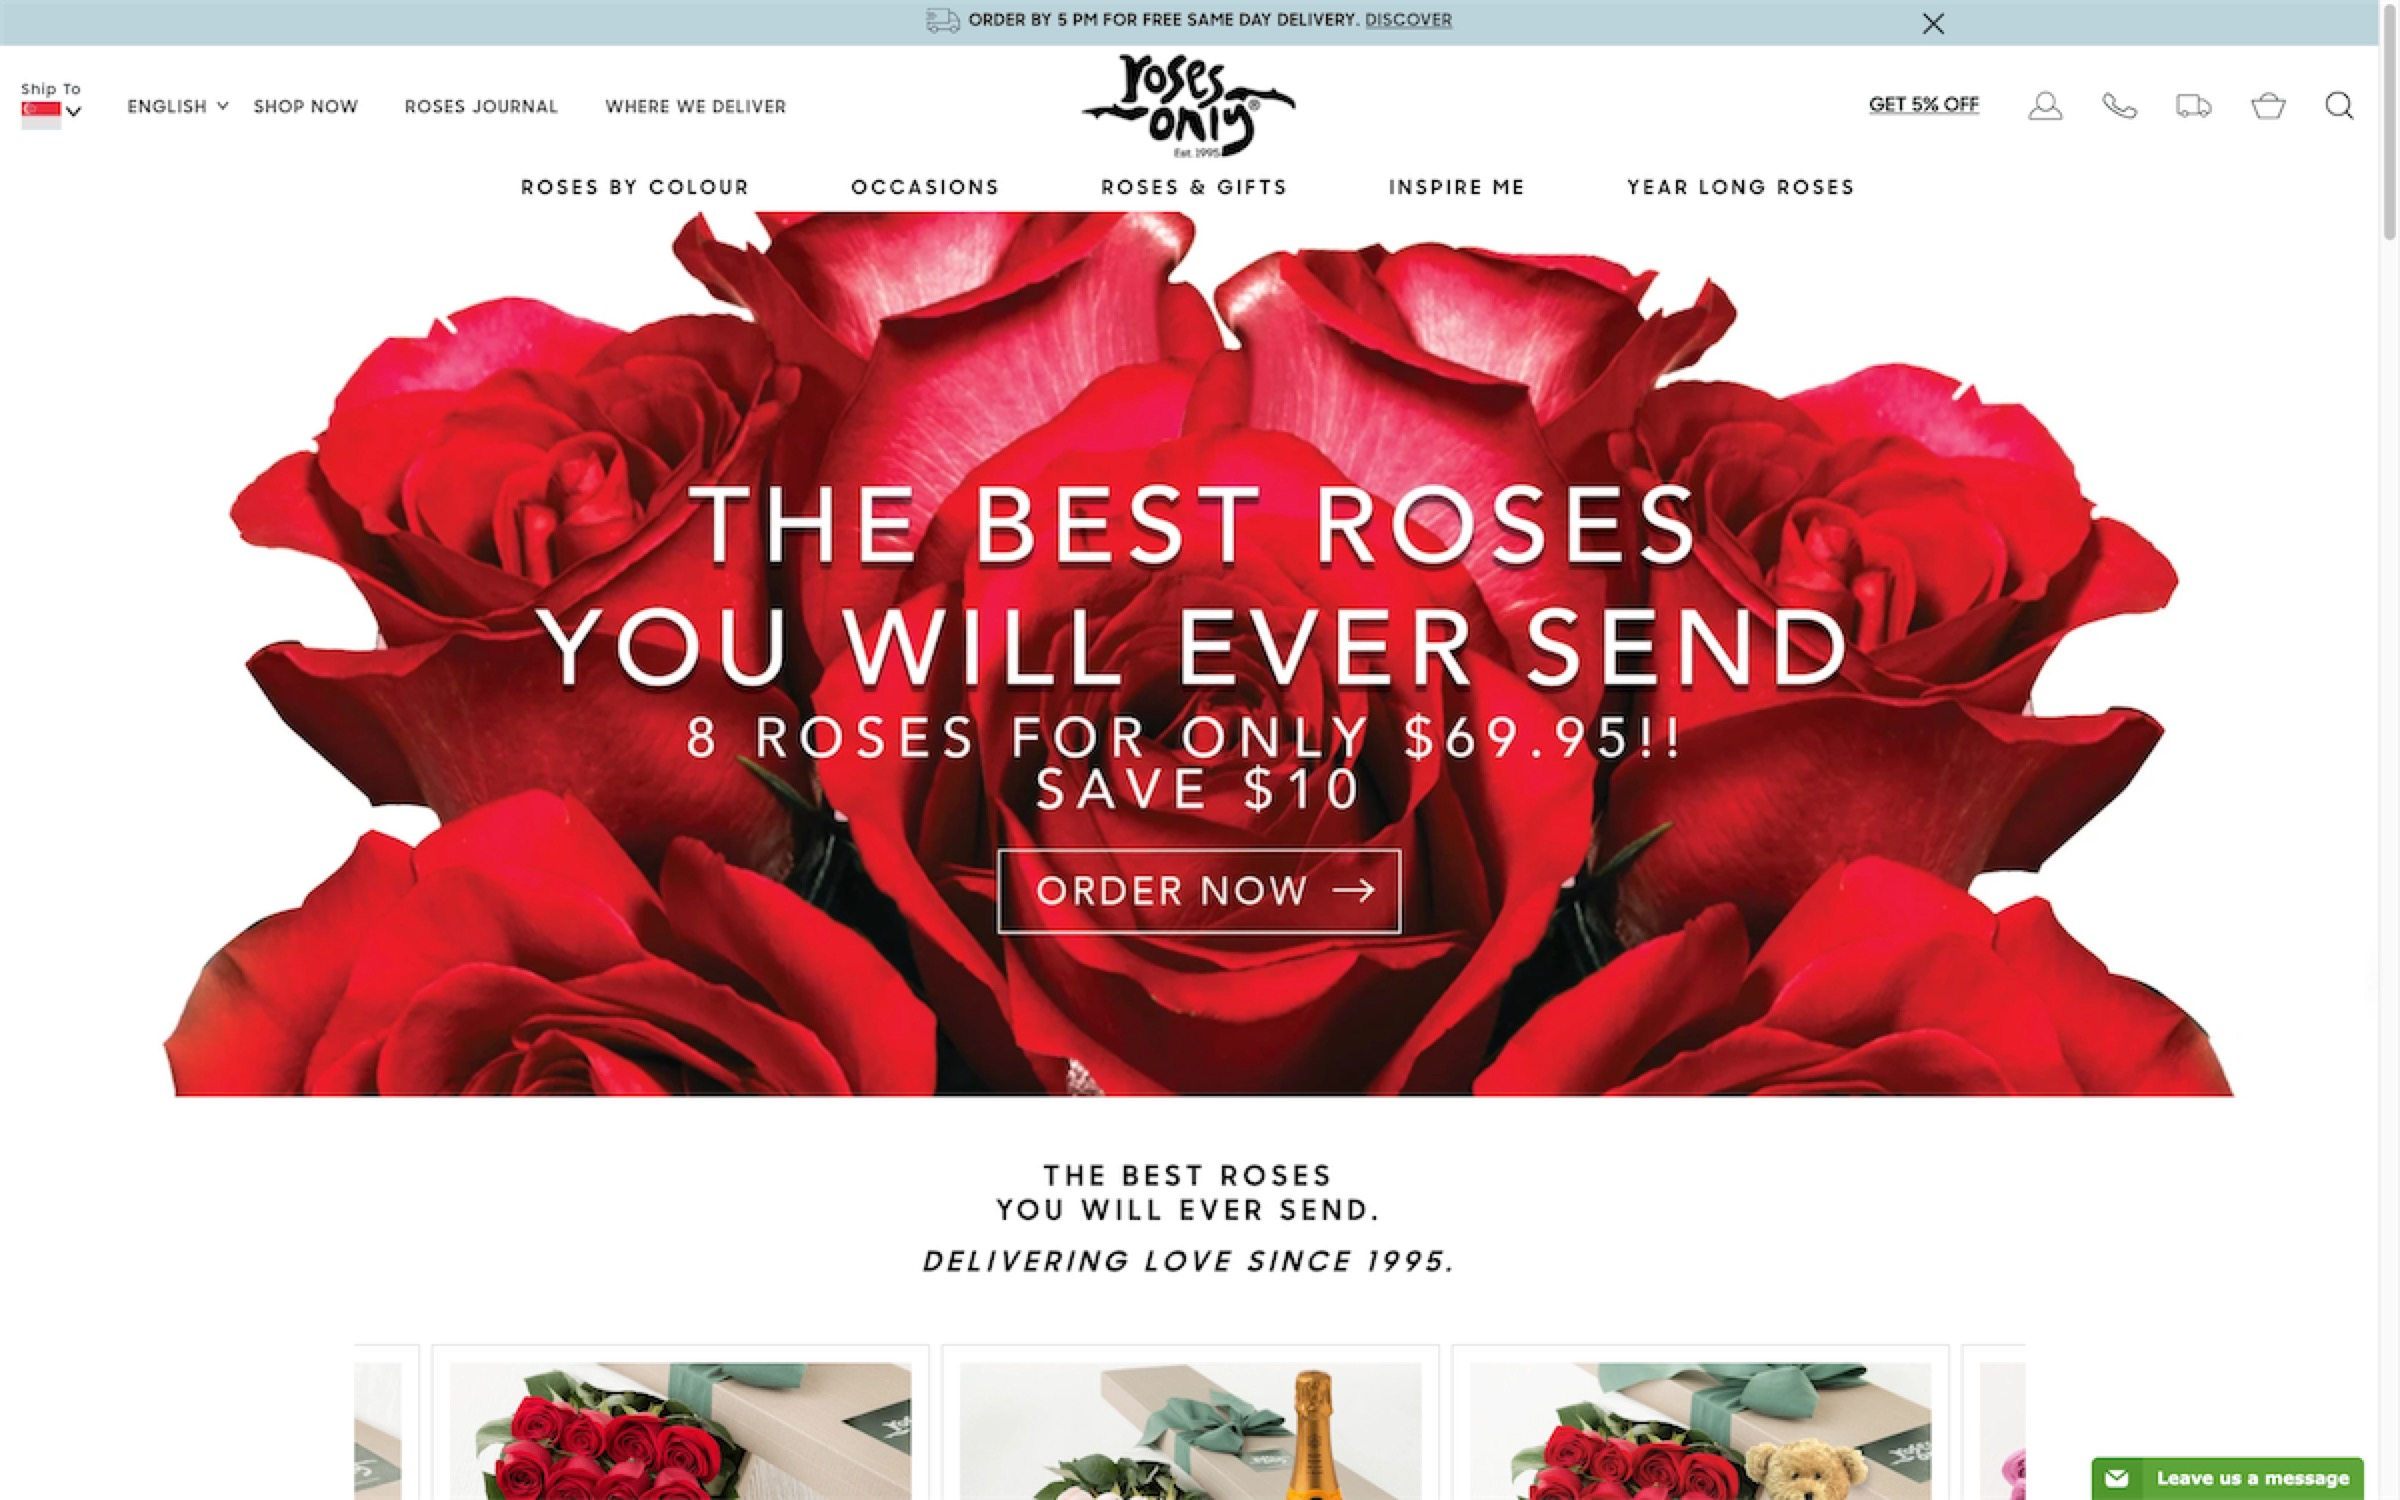 Roses only - website home